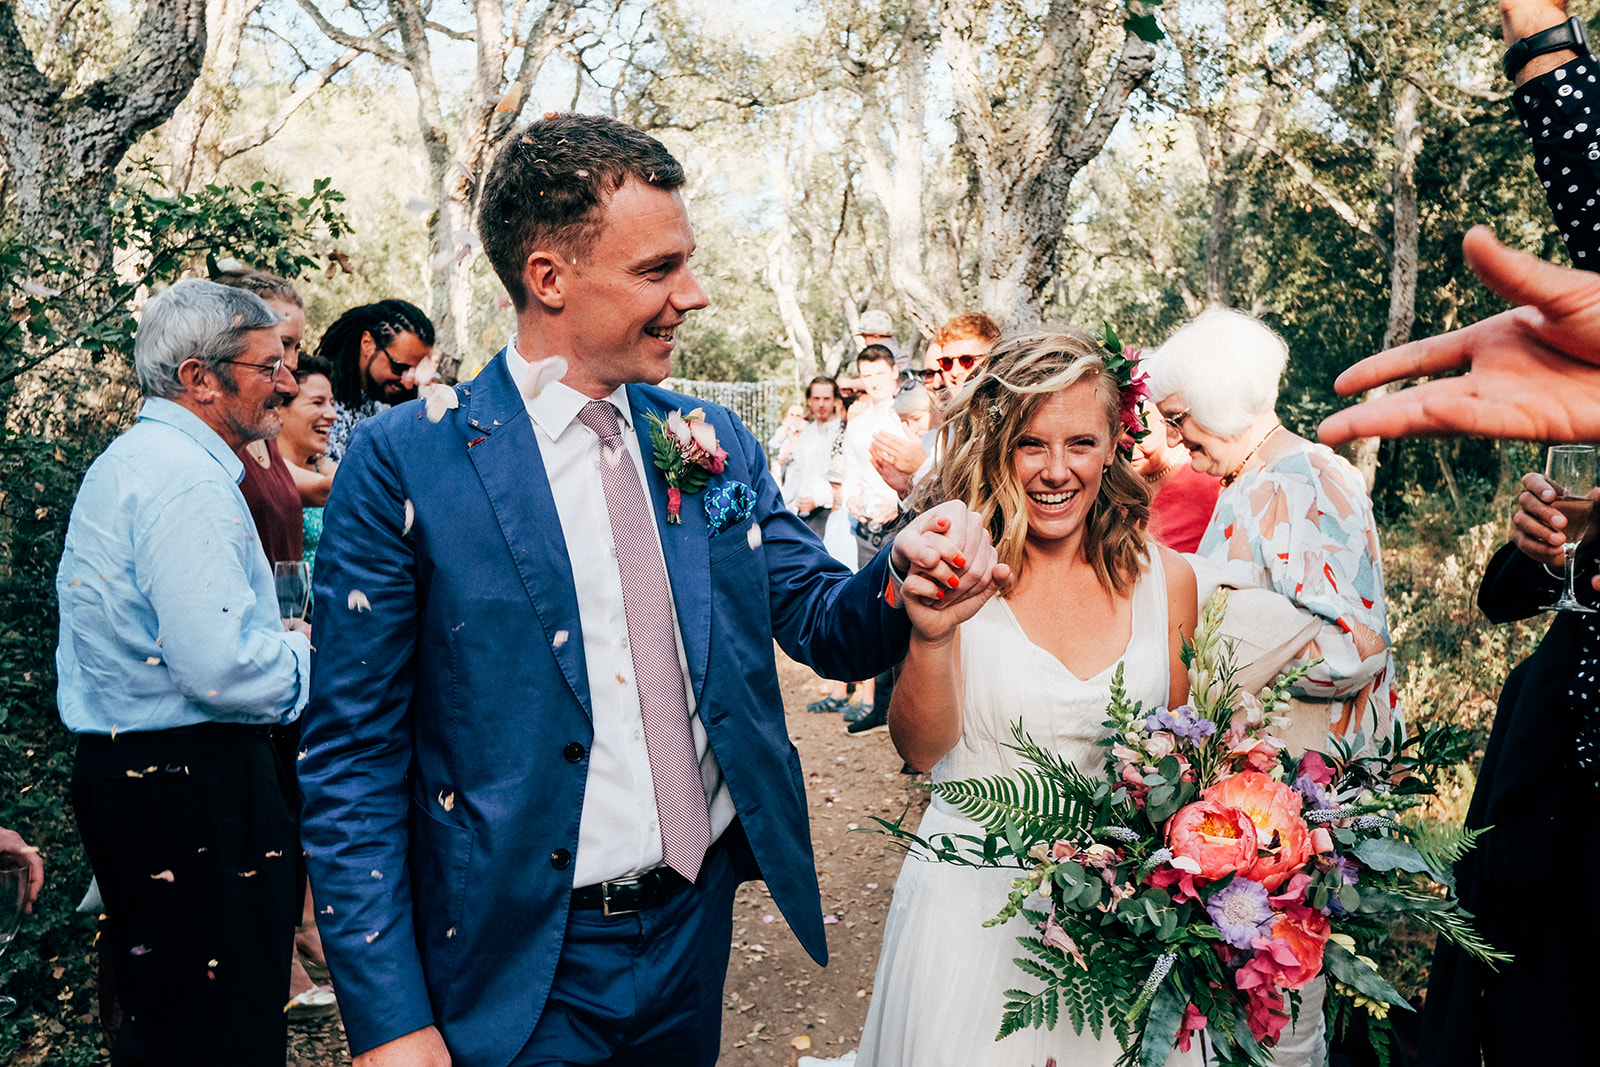 Costa Brava destination wedding with Abelia i Mel florals